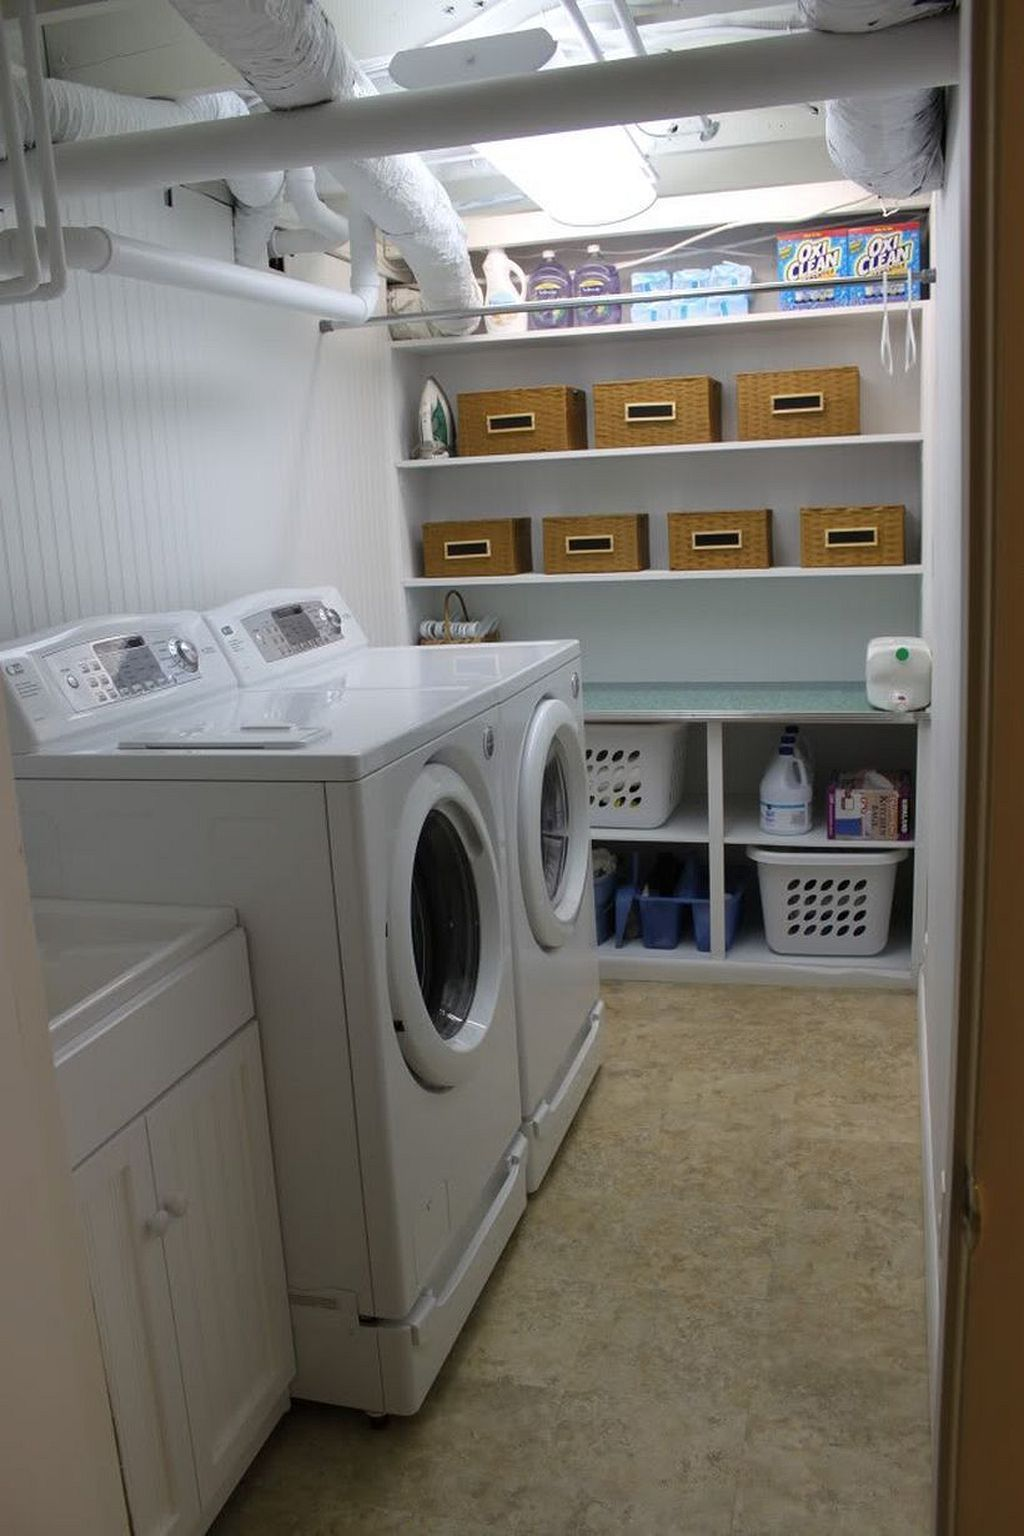 Fascinating Ideas Basement Remodel For Laundry Room7